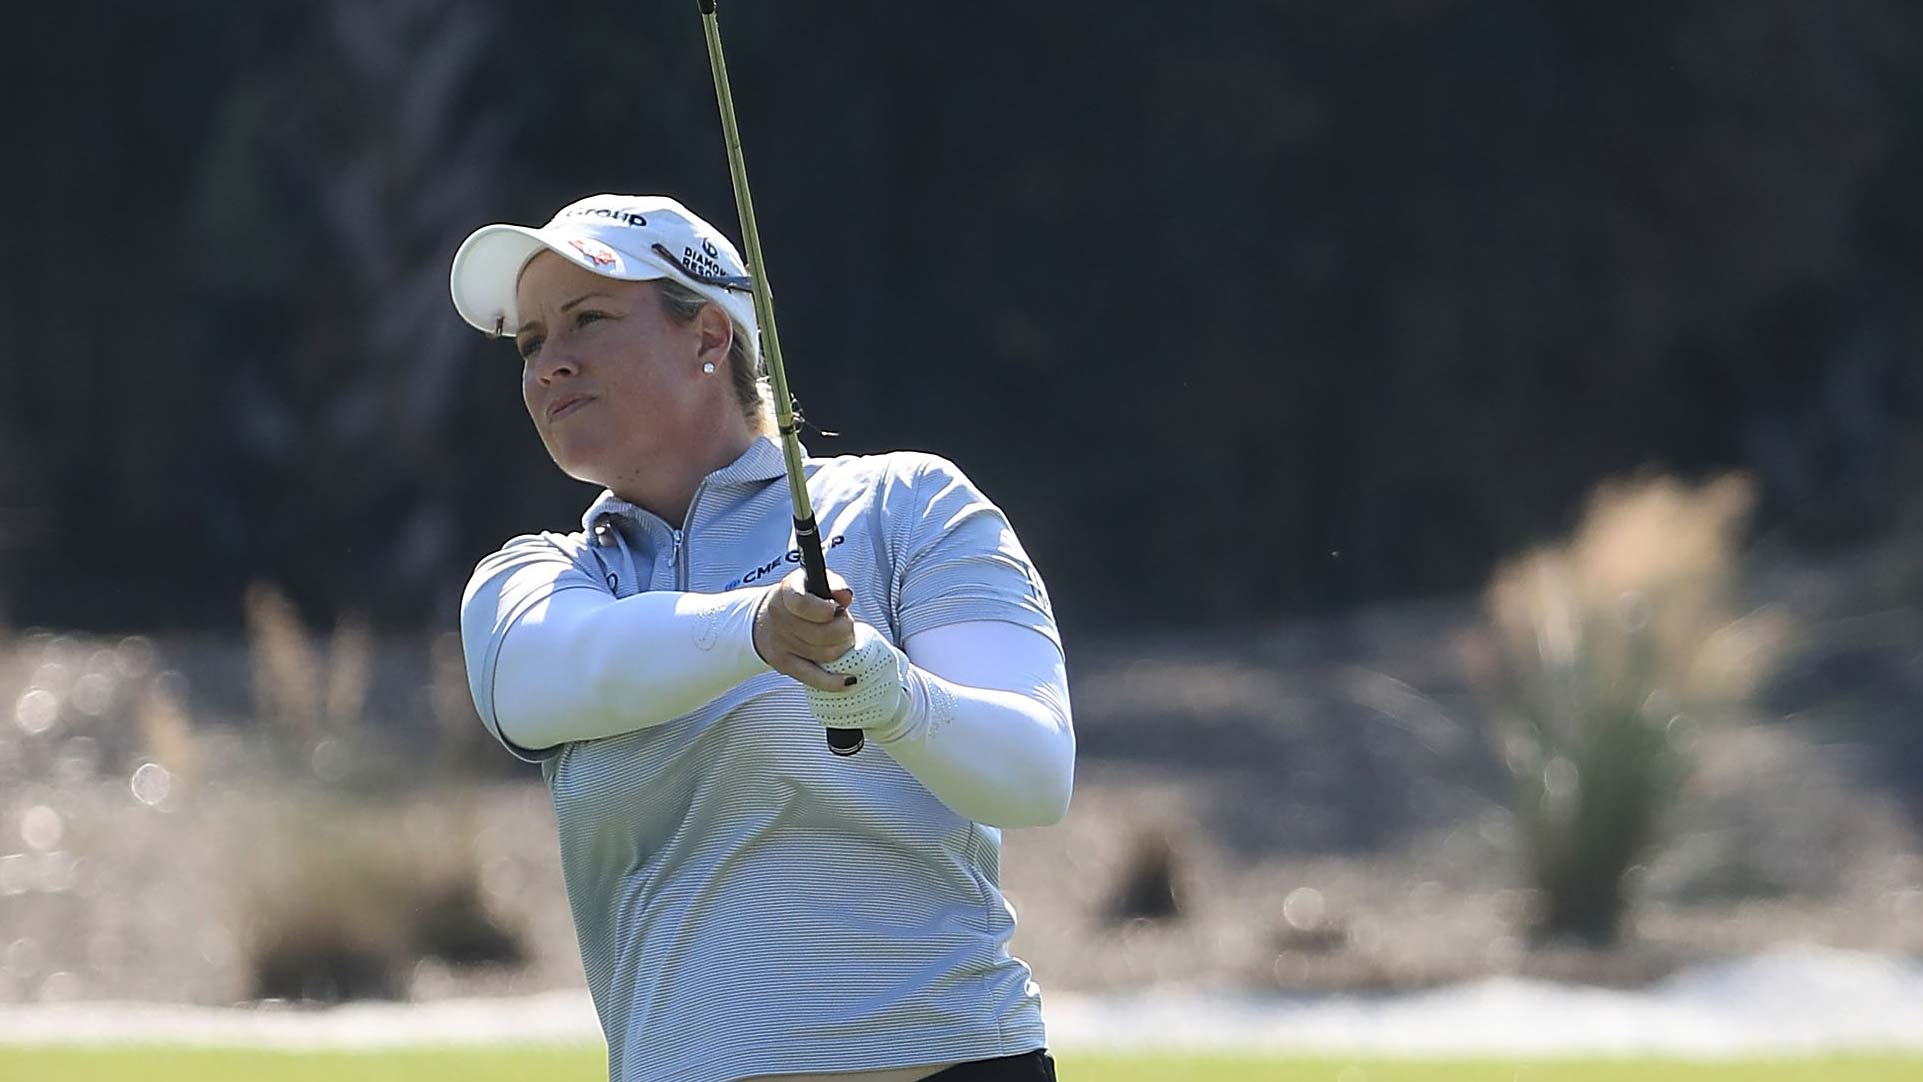 Brittany Lincicome plays her shot on the second hole during the third round of the CME Group Tour Championship